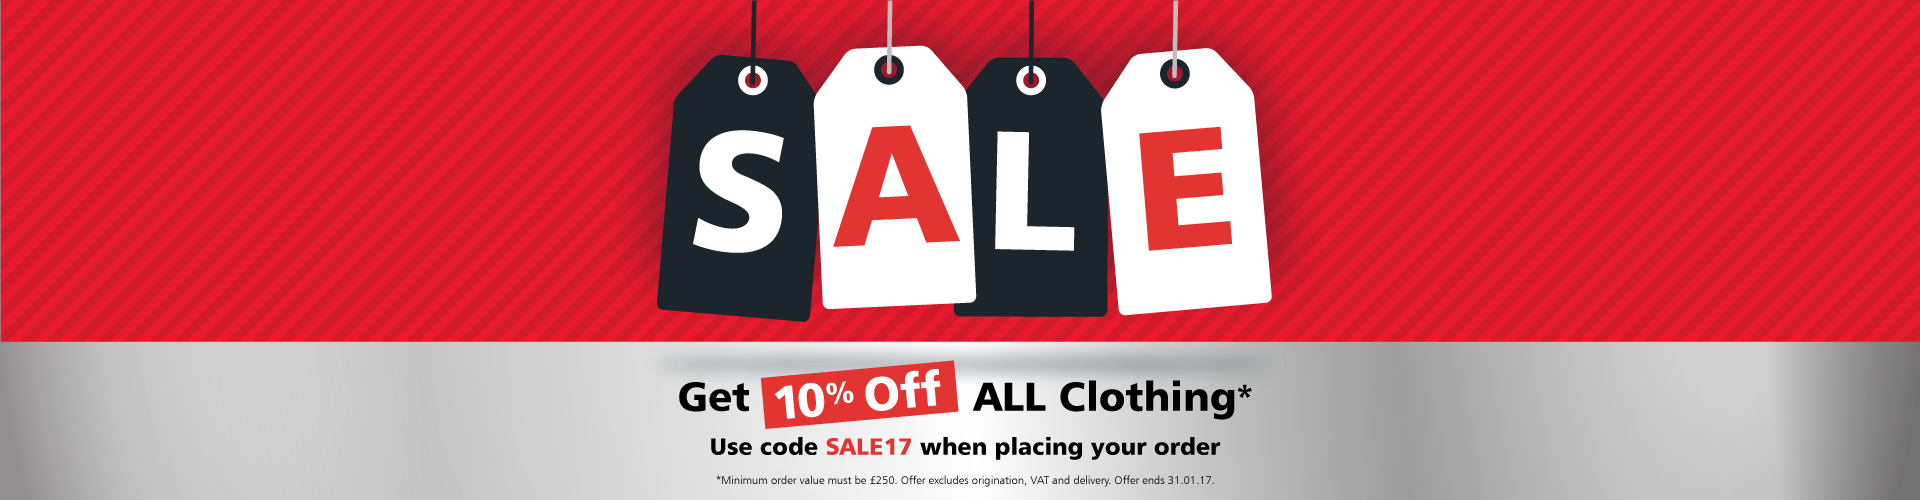 Get 10% off all clothing